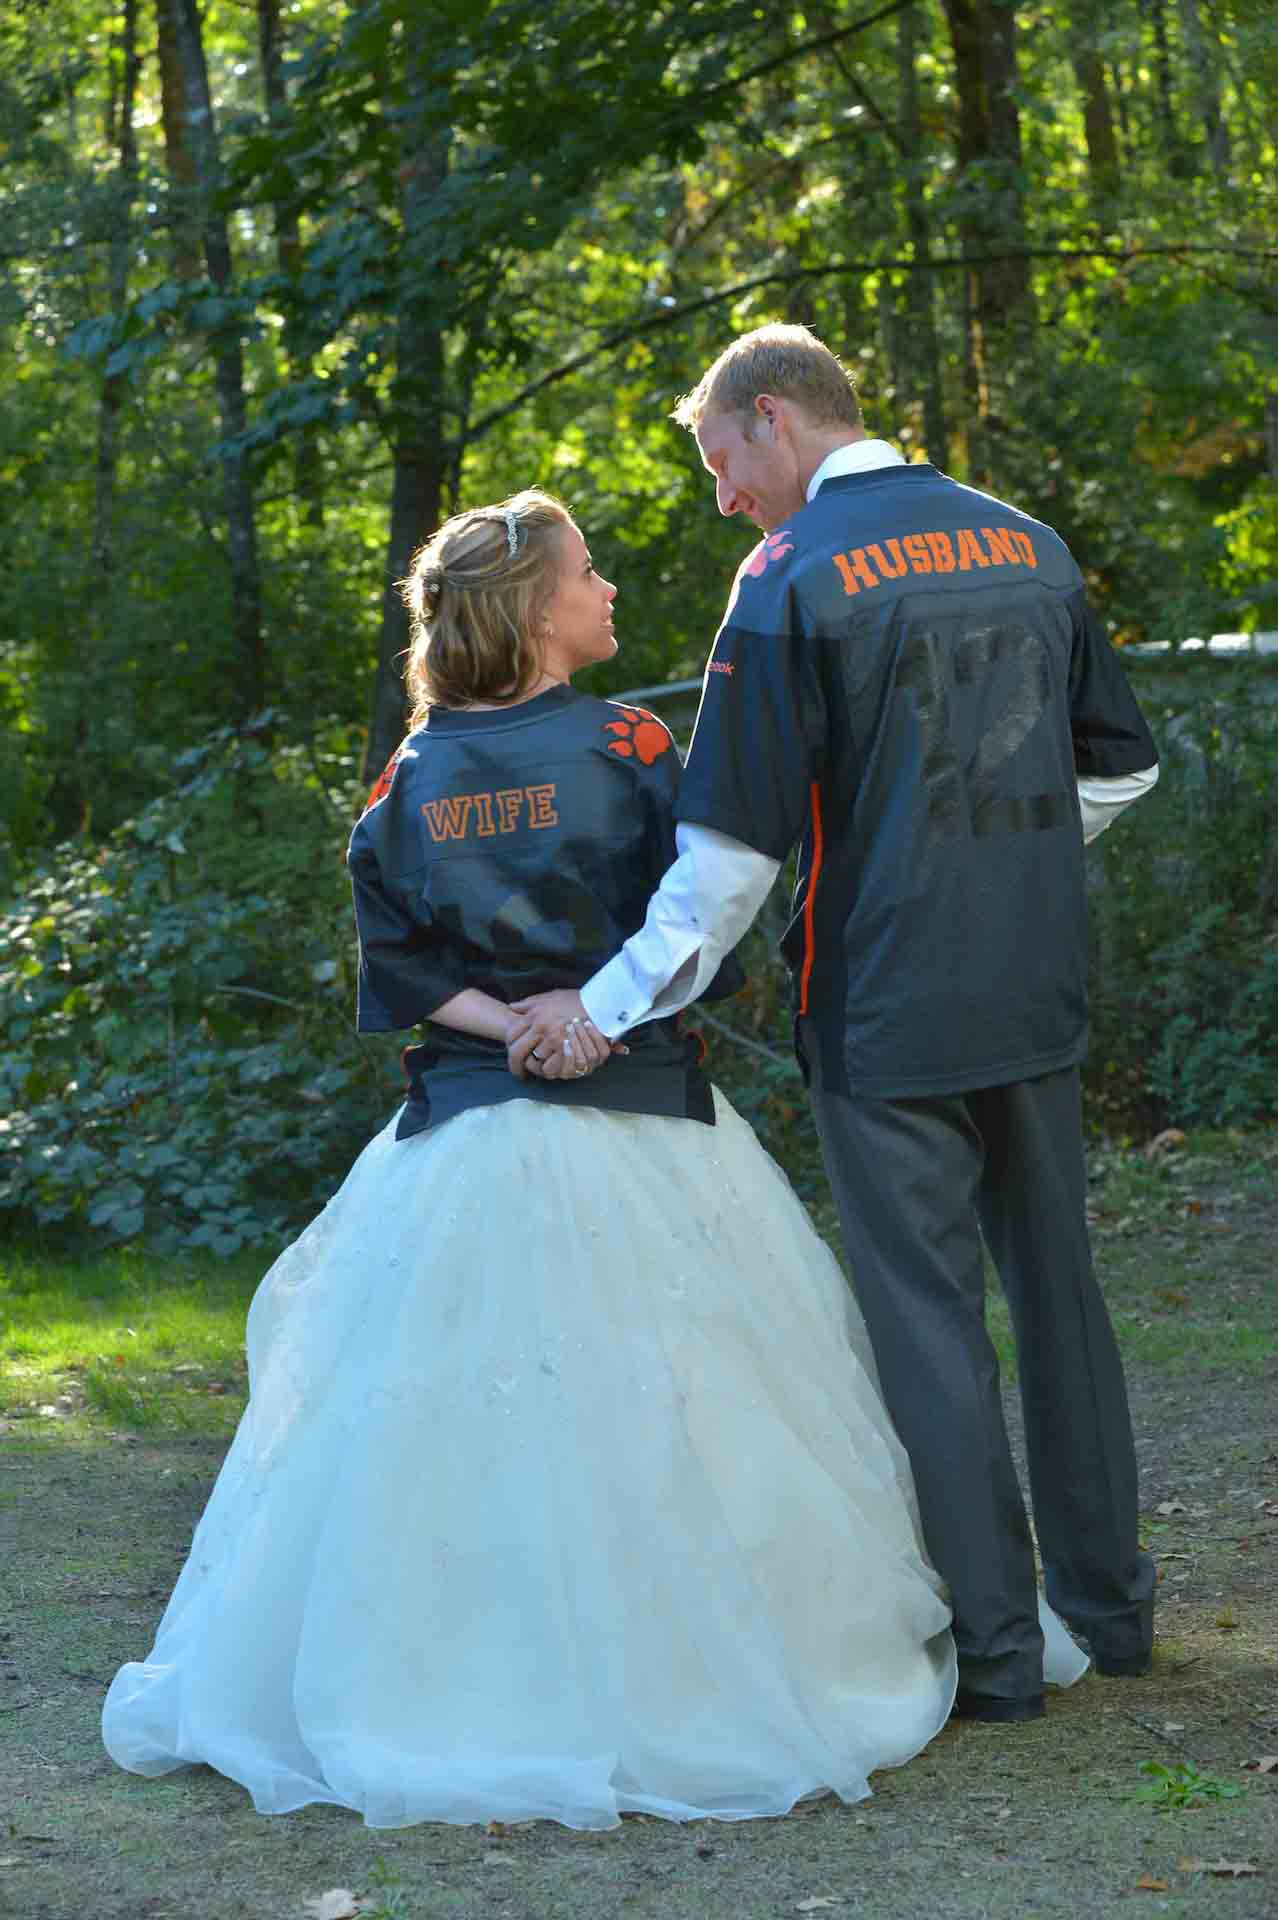 football wedding photo